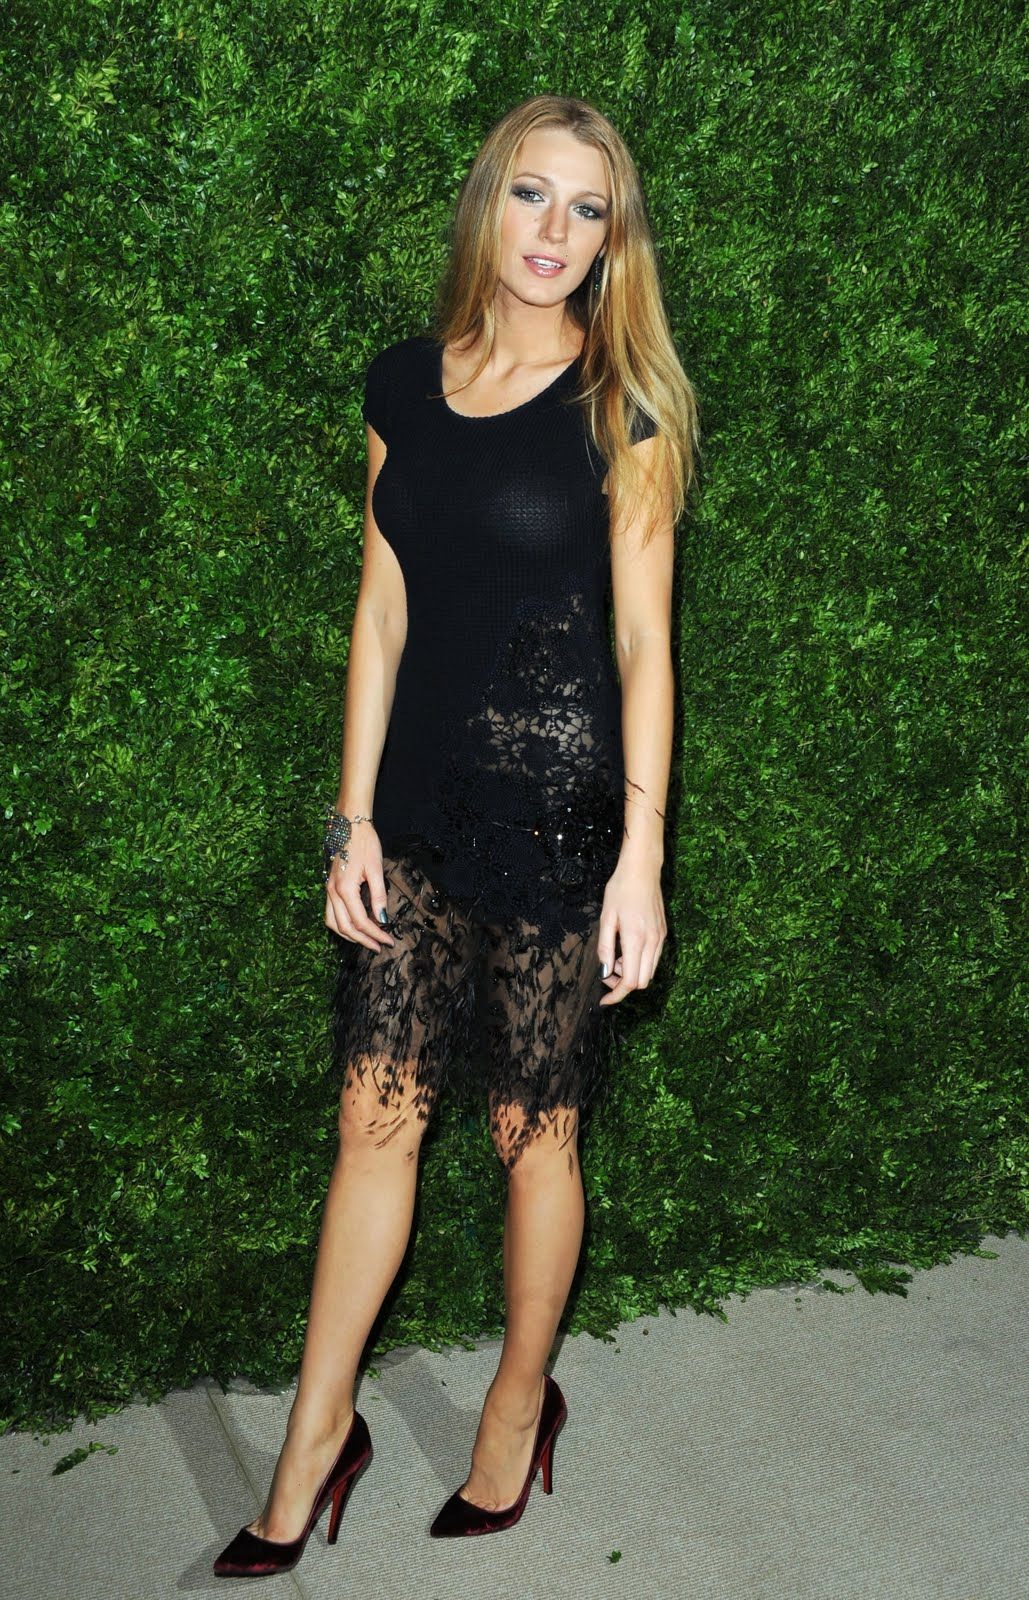 http://2.bp.blogspot.com/_pB39VNVB0Wk/TOL3A0EmV_I/AAAAAAAAE1U/Y6uj0gePipg/s1600/04975_celebrity_paradise.com_Blake_Lively_7th_Annual_CFDA_Vogue_Fashion_Fund_Awards_Soho_NYC_15.11.2010_01_122_10lo.jpg